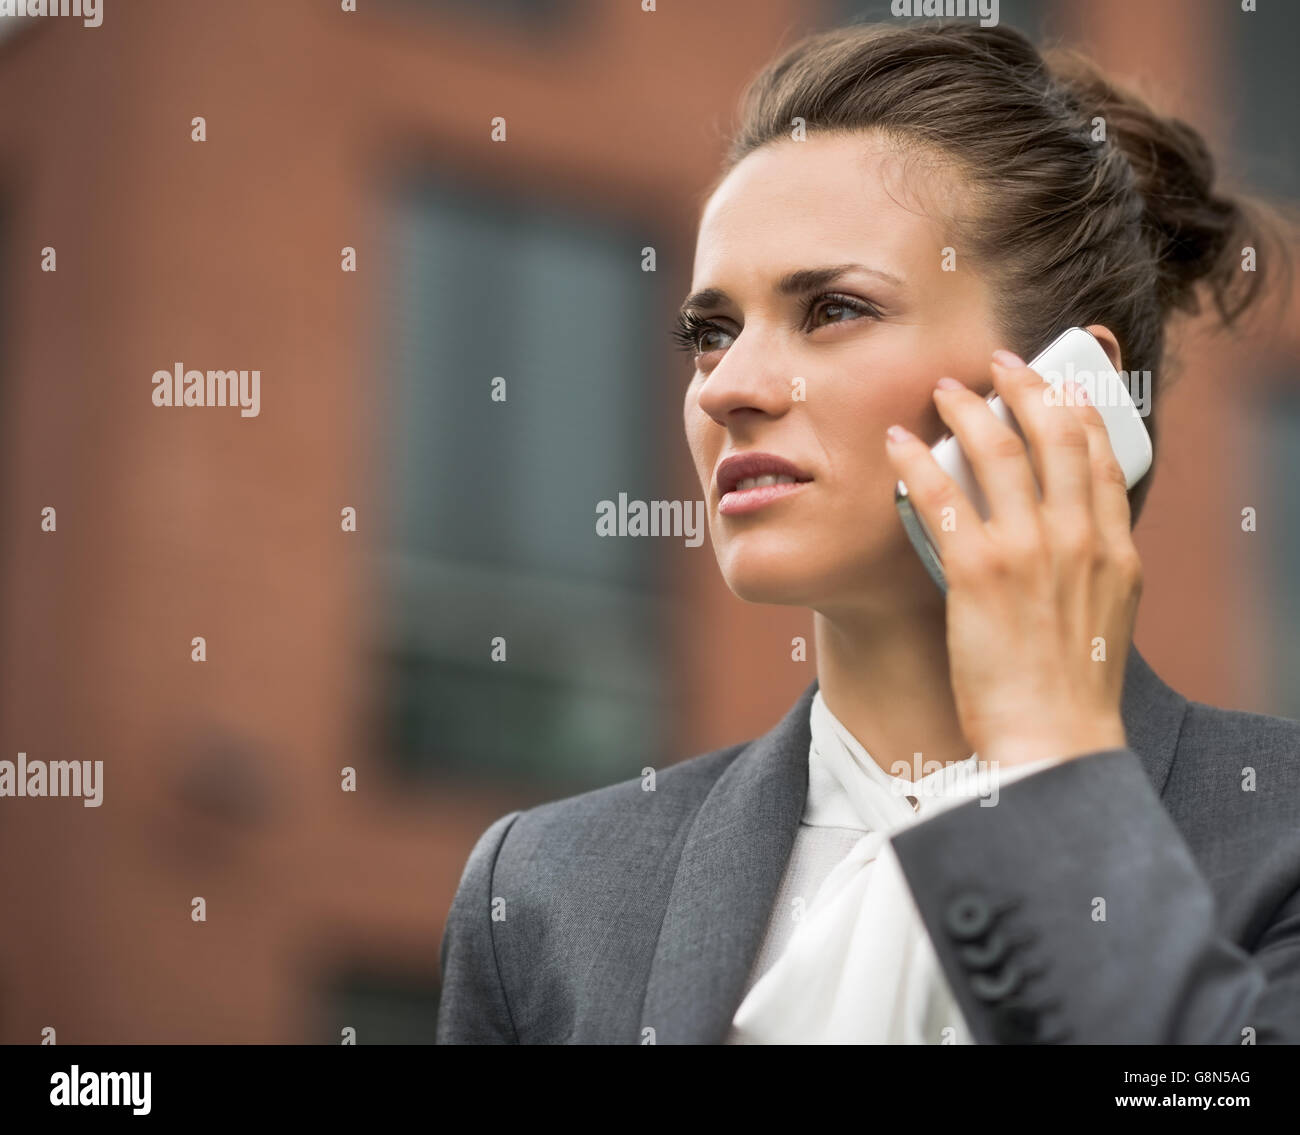 The new business. Modern business woman against office building talking smartphone - Stock Image